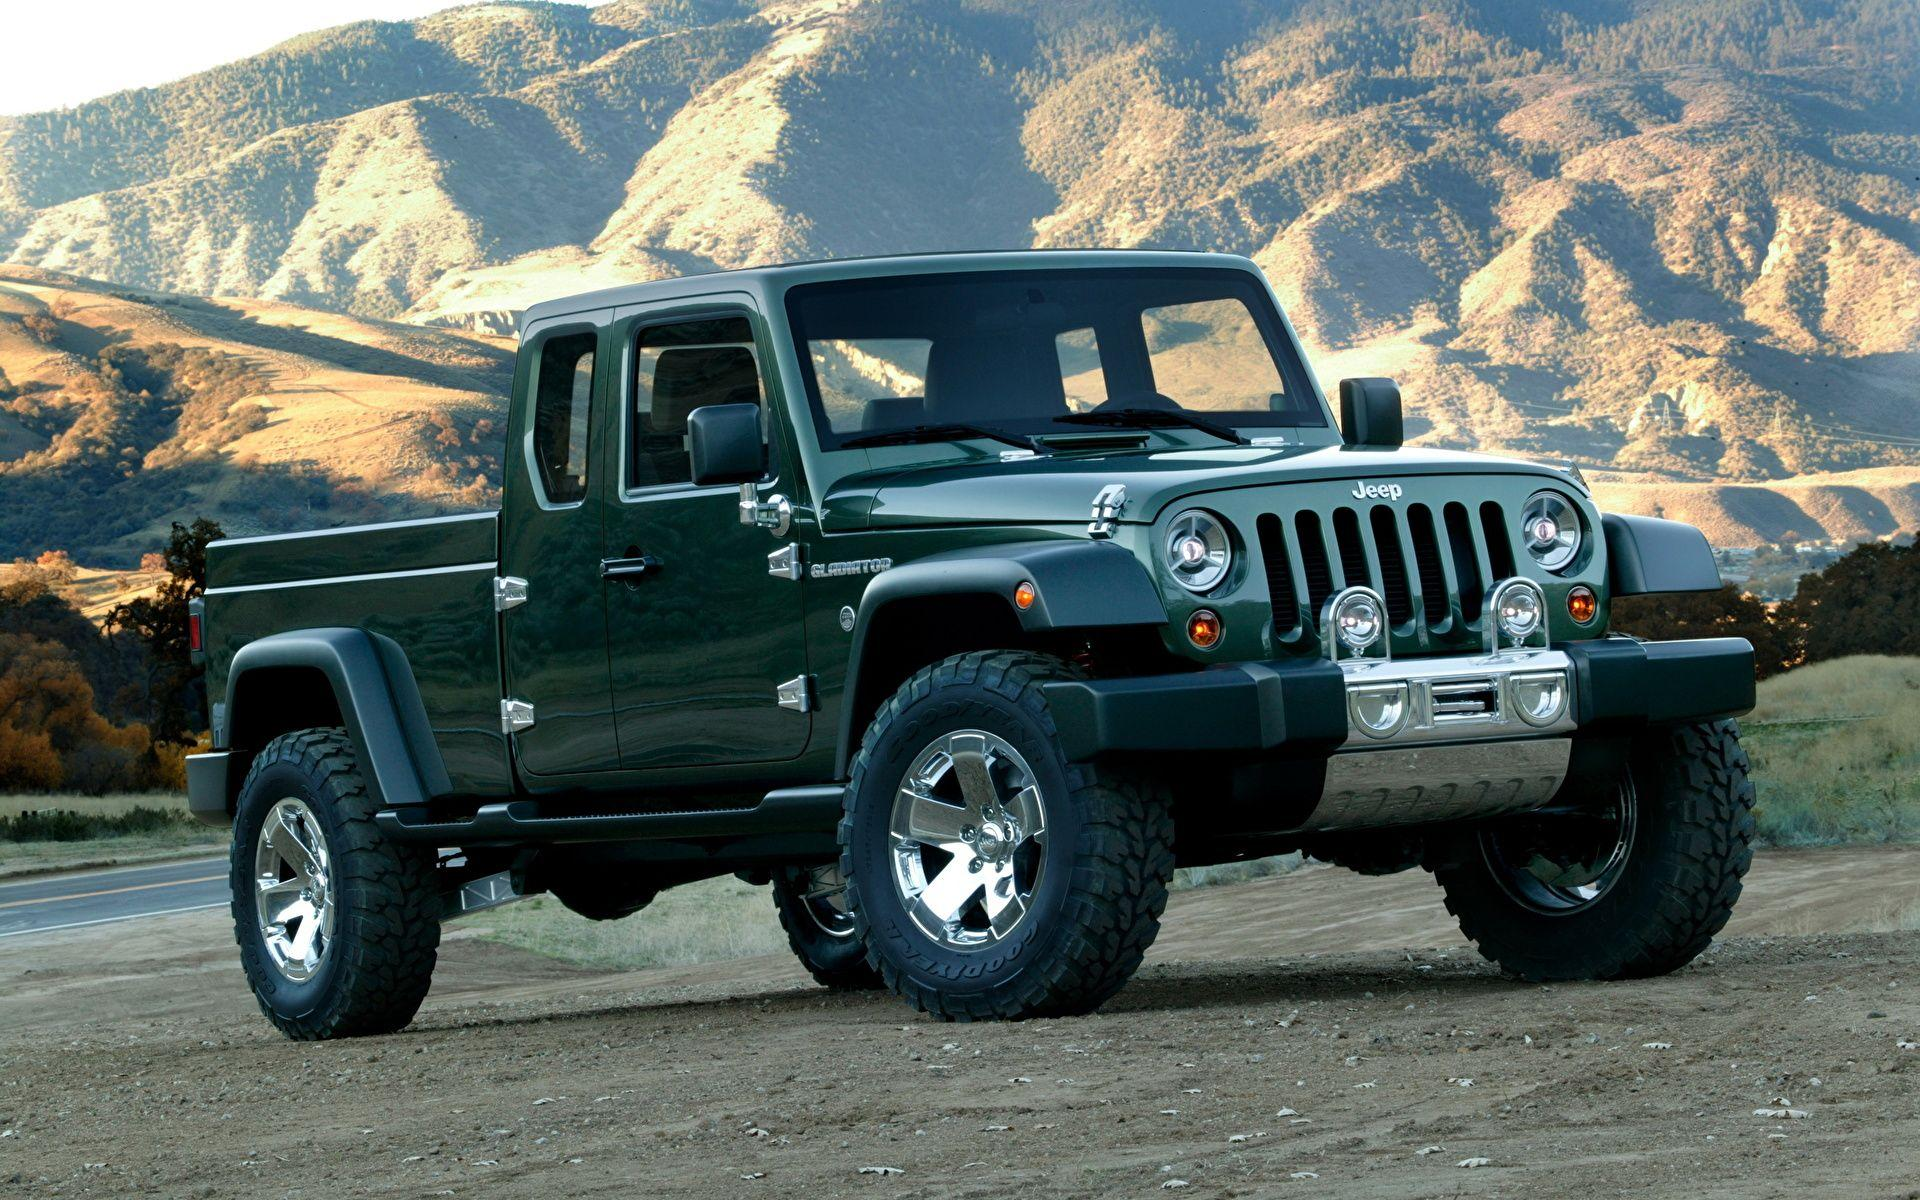 Images Jeep Gladiator Cars 1920x1200